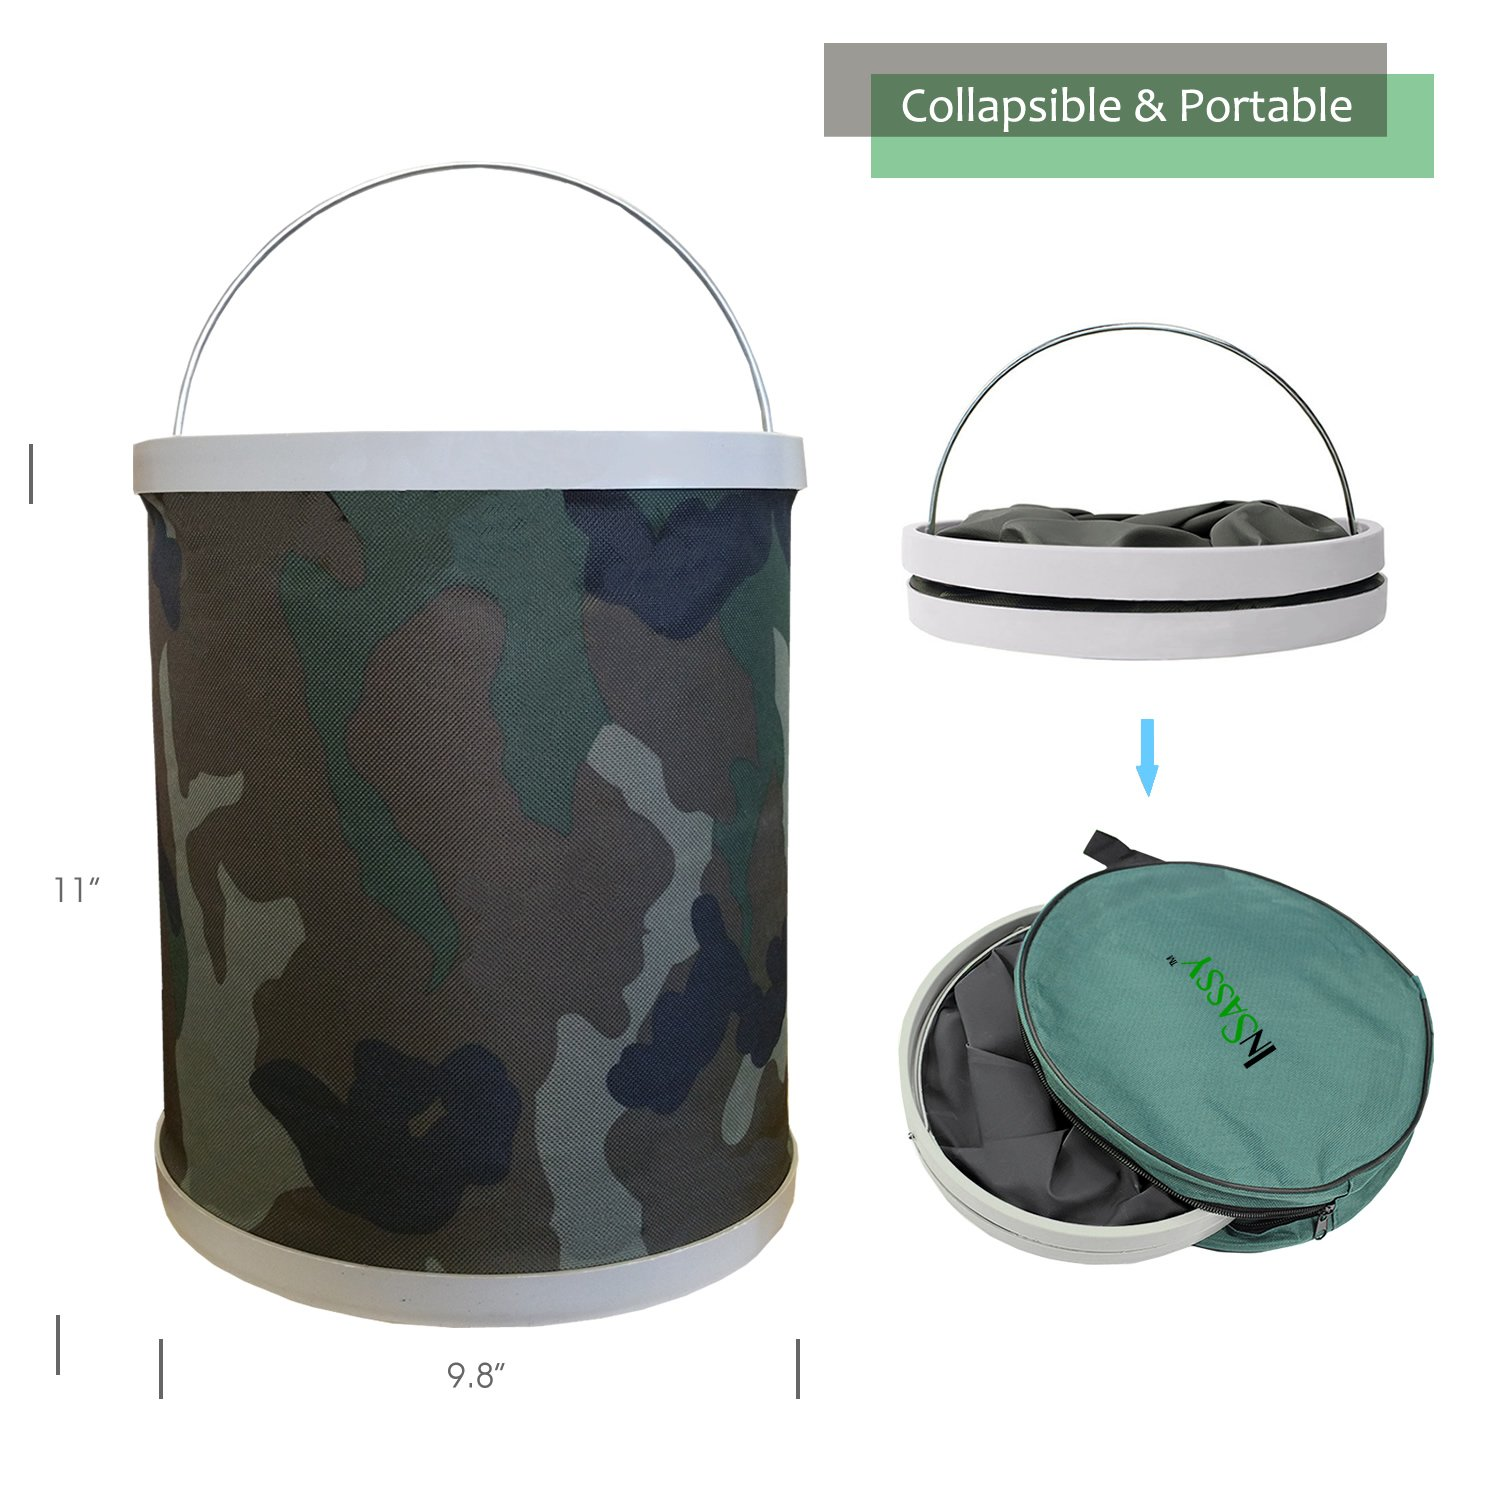 Compact Collapsible Water Bucket by InSassy – Perfect for Camping, Gardening and Outdoors – Durable, Lightweight and Portable Folding Wash Basin Storage Fishing Beach Container – Camo Color by InSassy (Image #2)